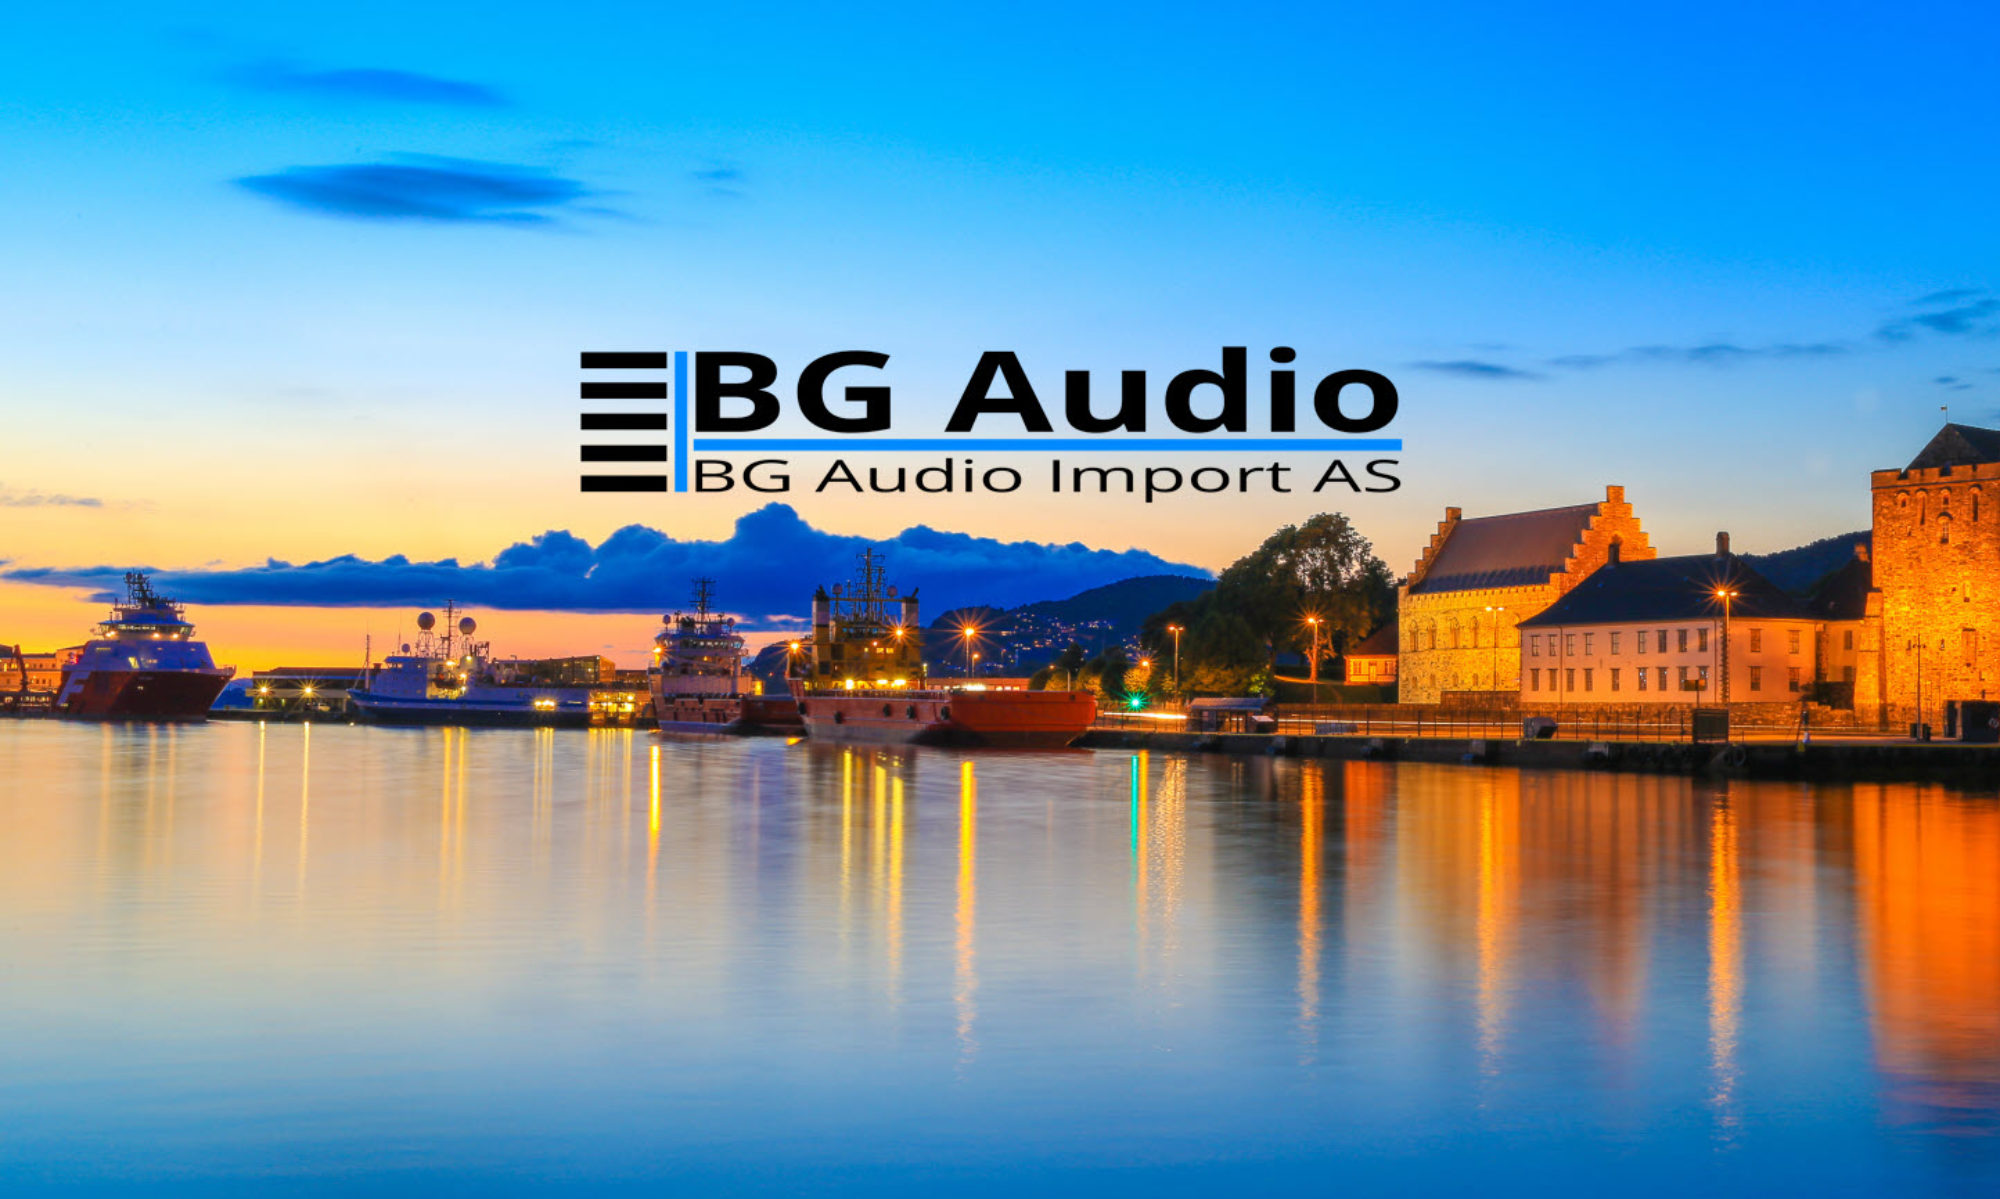 Bg Audio